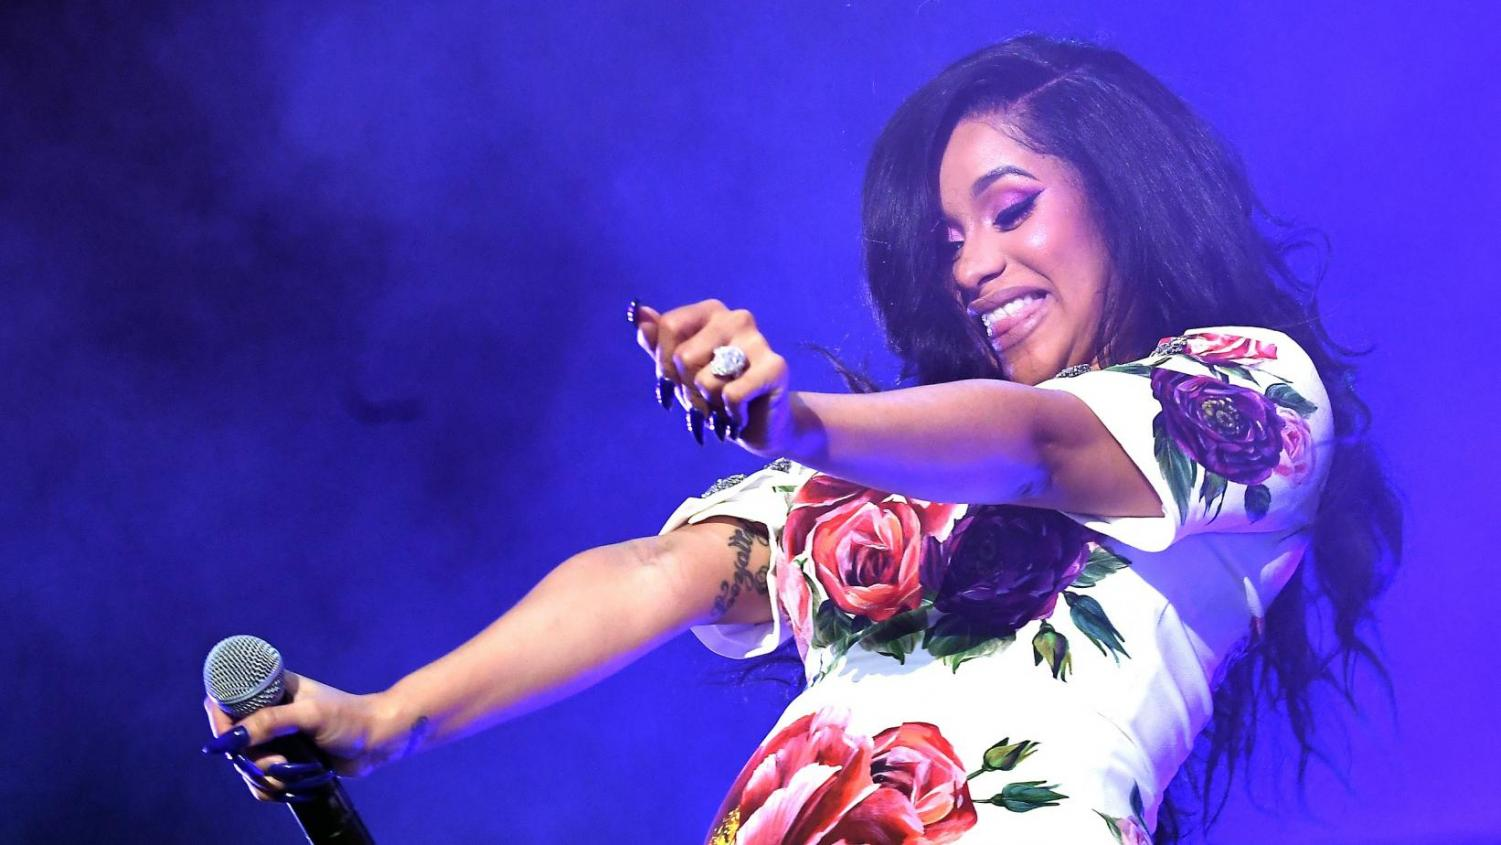 Cardi B rose to the music scene in 2017 with her song